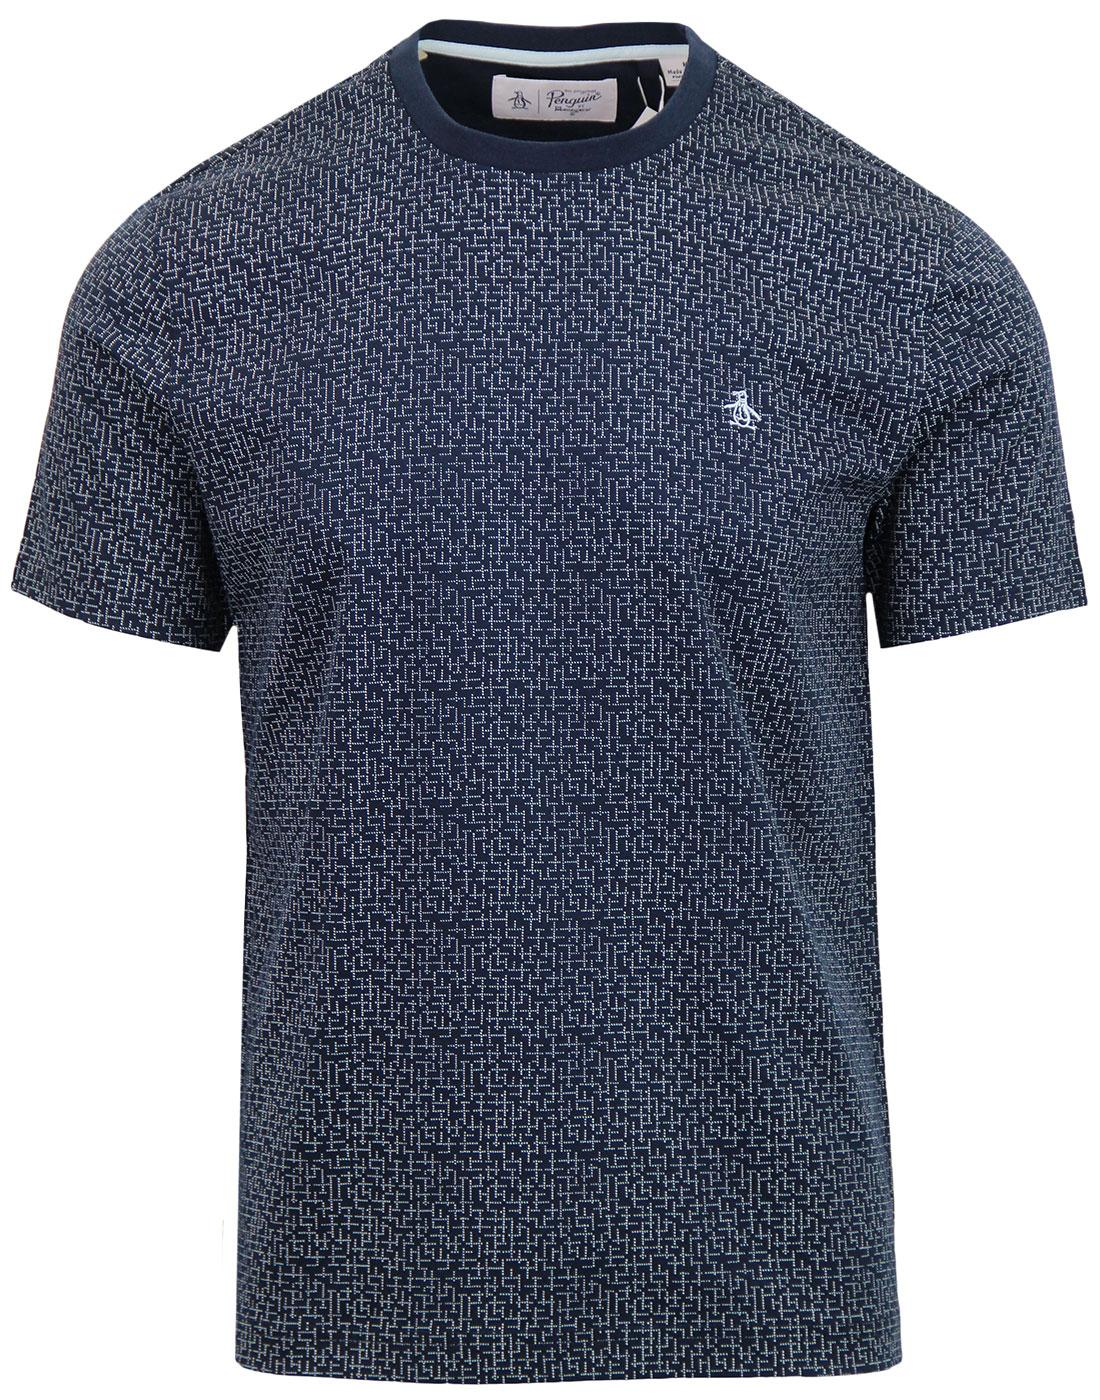 ORIGINAL PENGUIN Retro Abstract Dot Print T-Shirt